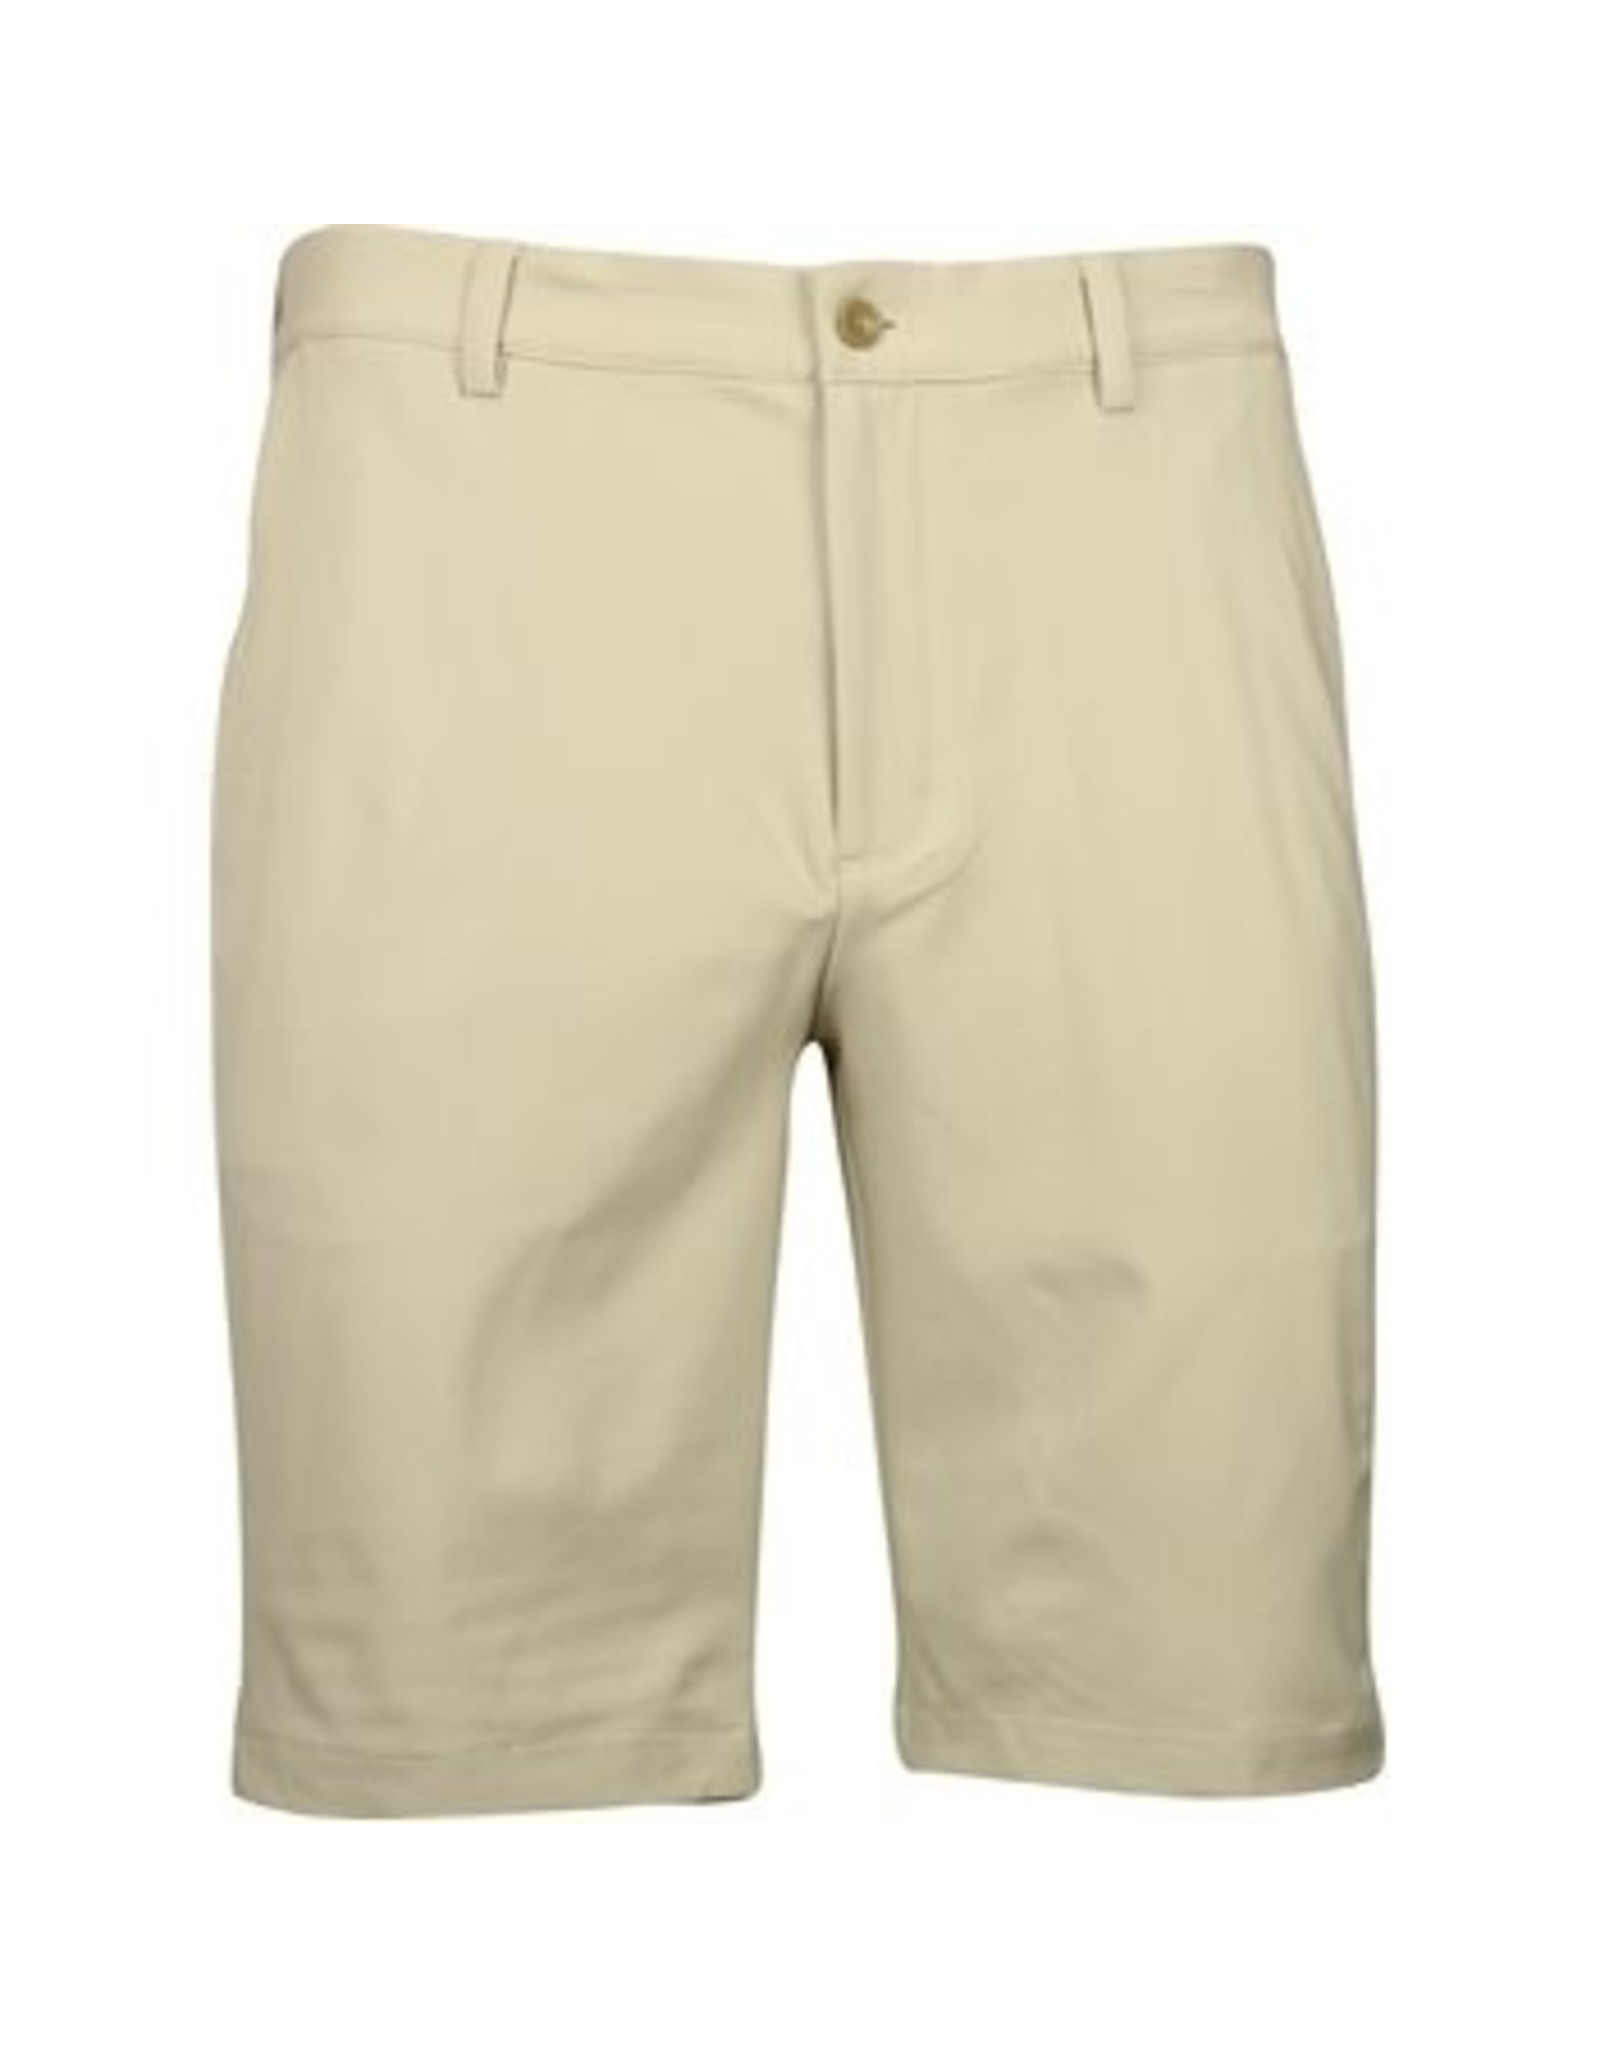 Greg Norman Apparel GN Micro Lux Short